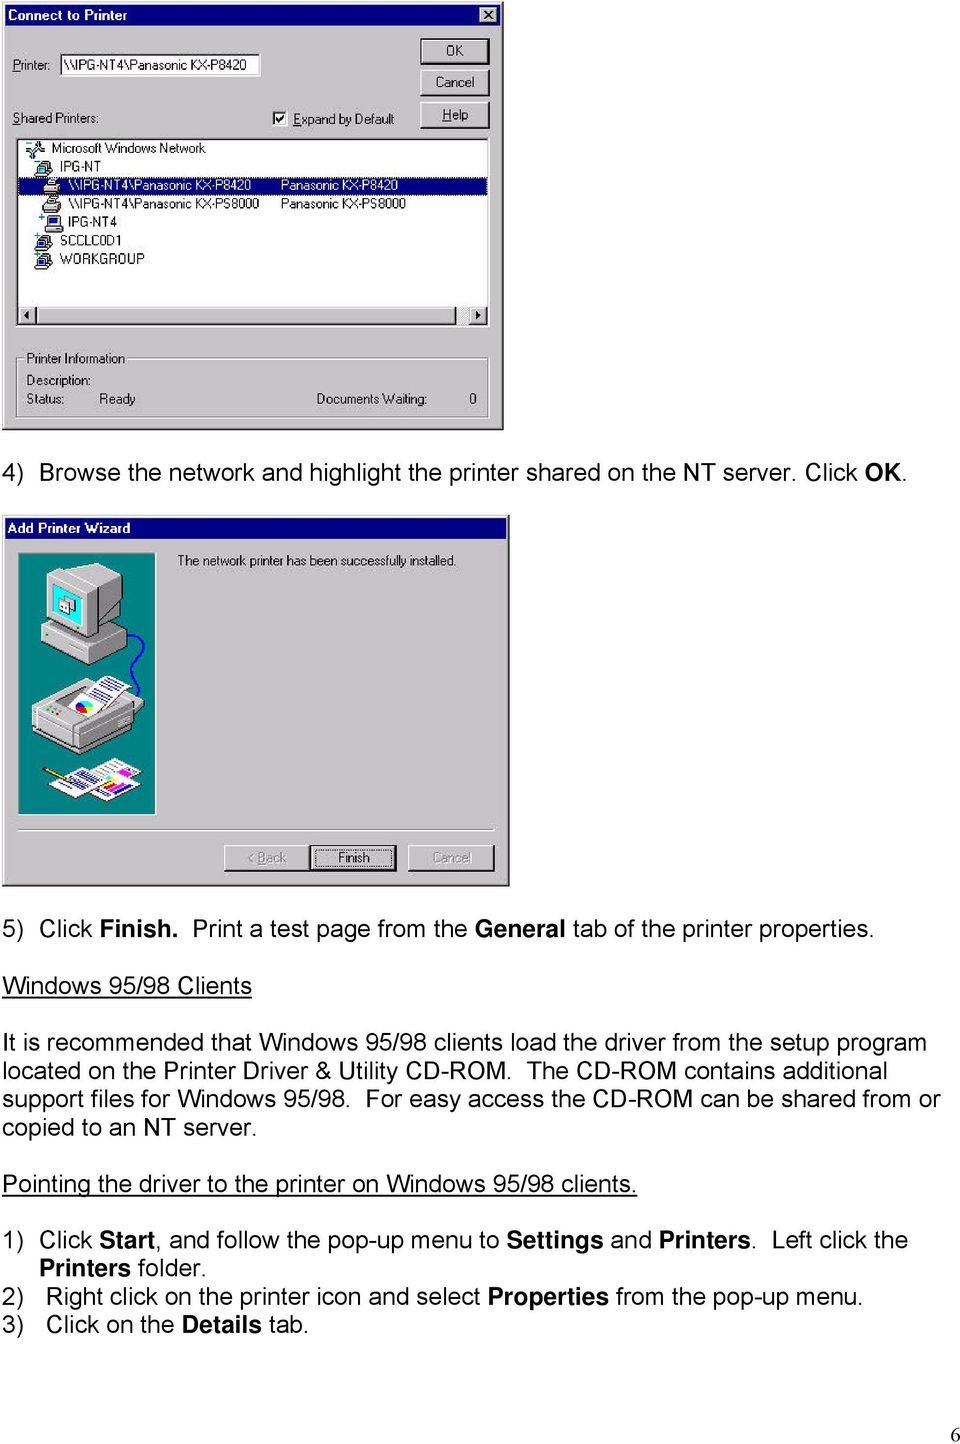 The CD-ROM contains additional support files for Windows 95/98. For easy access the CD-ROM can be shared from or copied to an NT server.